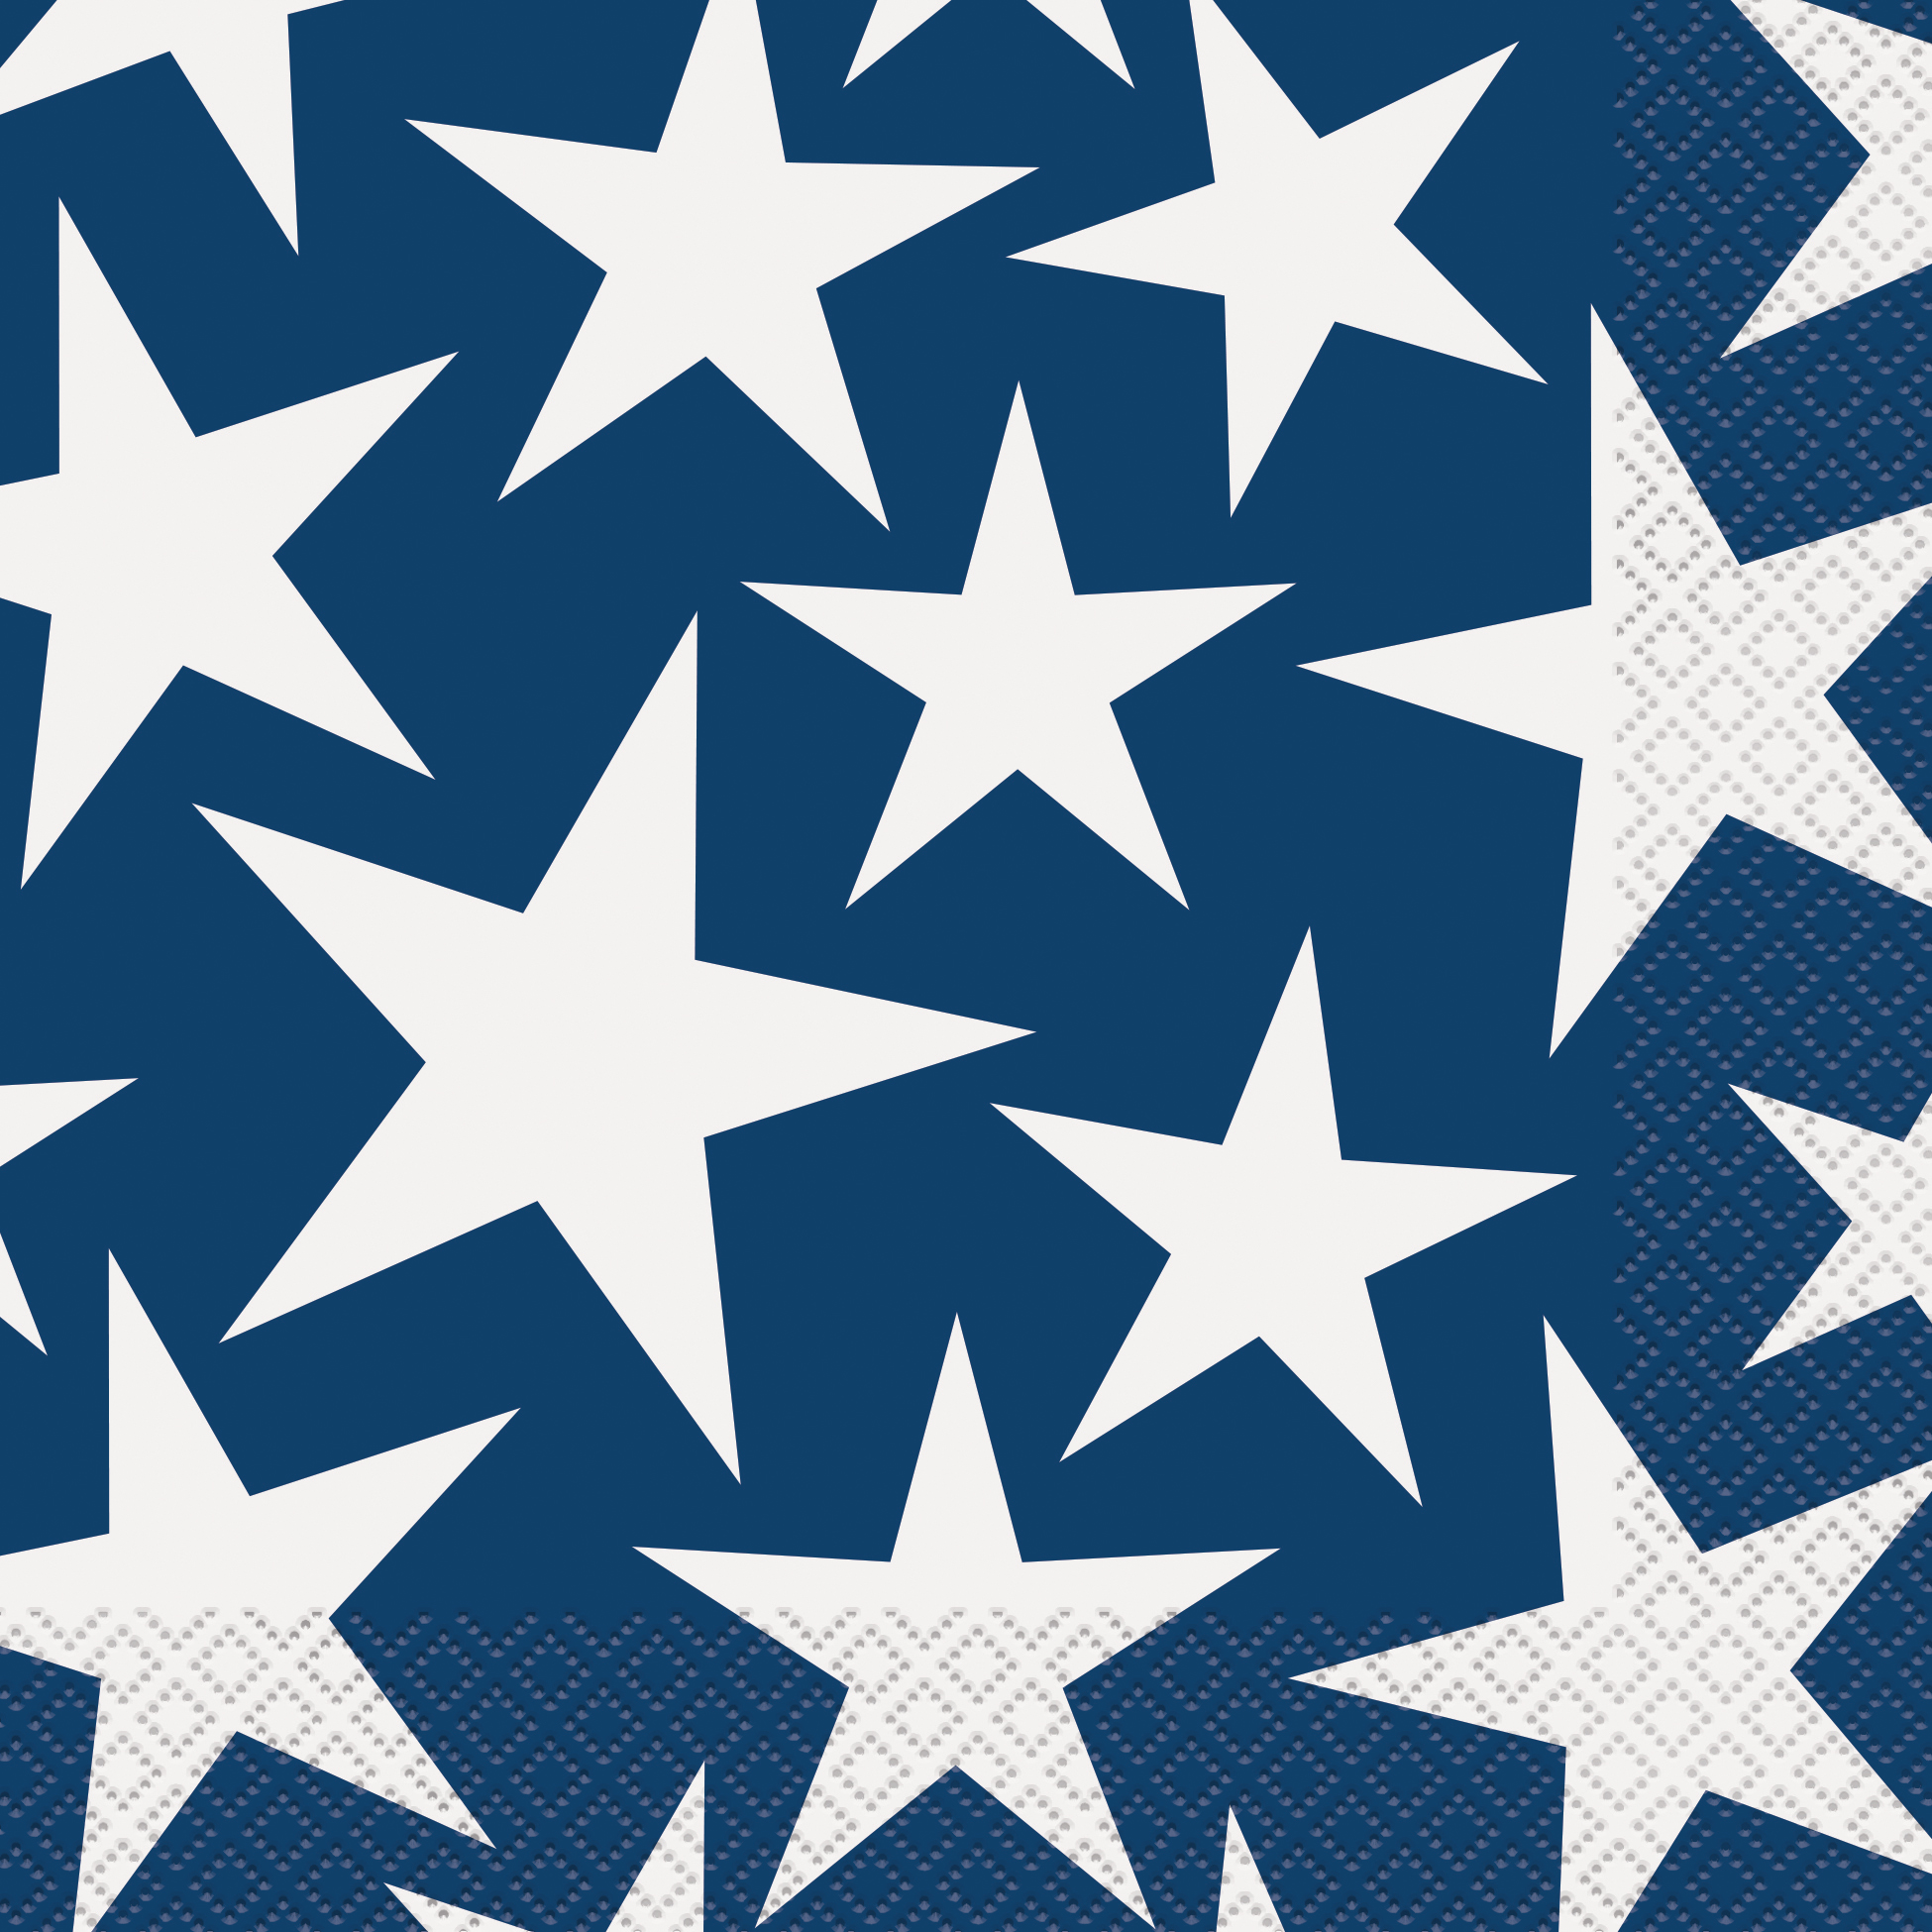 Stars & Stripes 4th of July Paper Luncheon Napkins, 6.5 in, 16ct